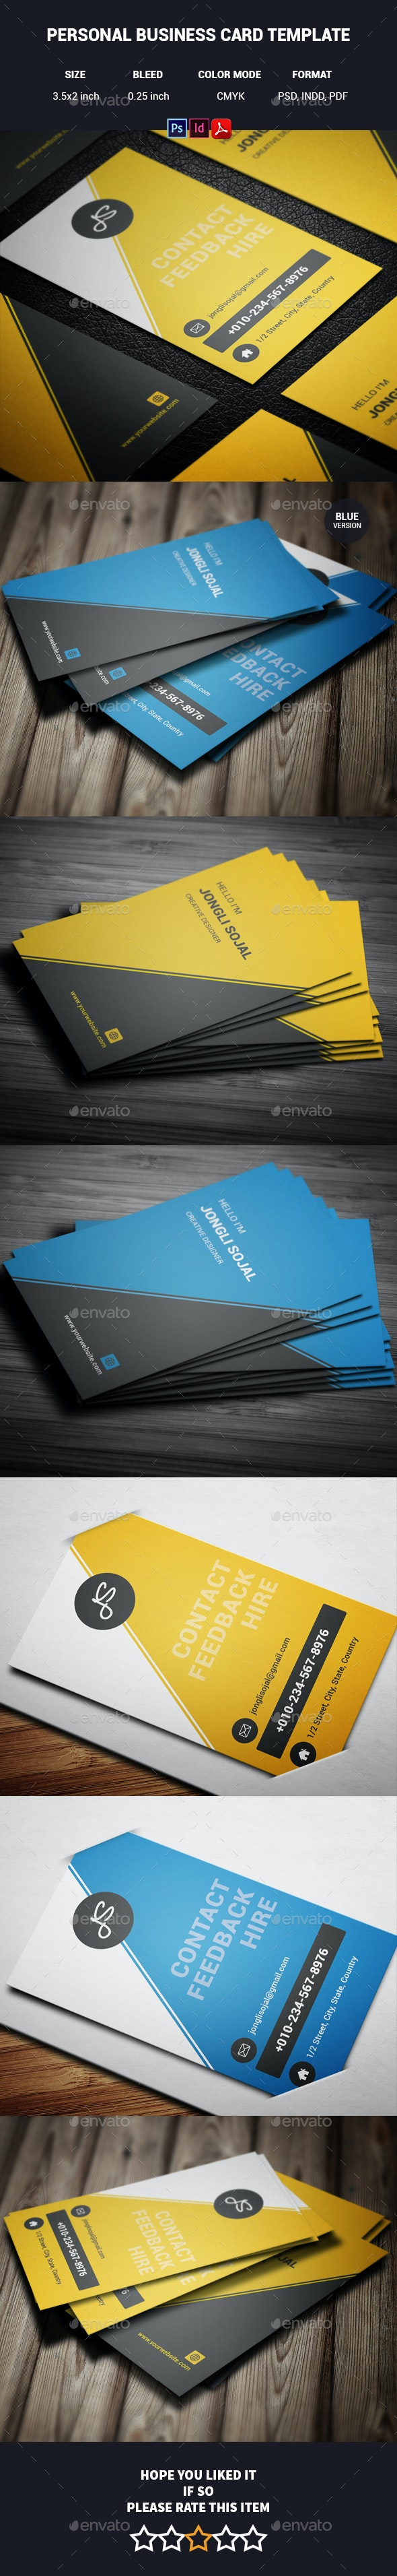 Personal Business Card Template - Creative Business Cards